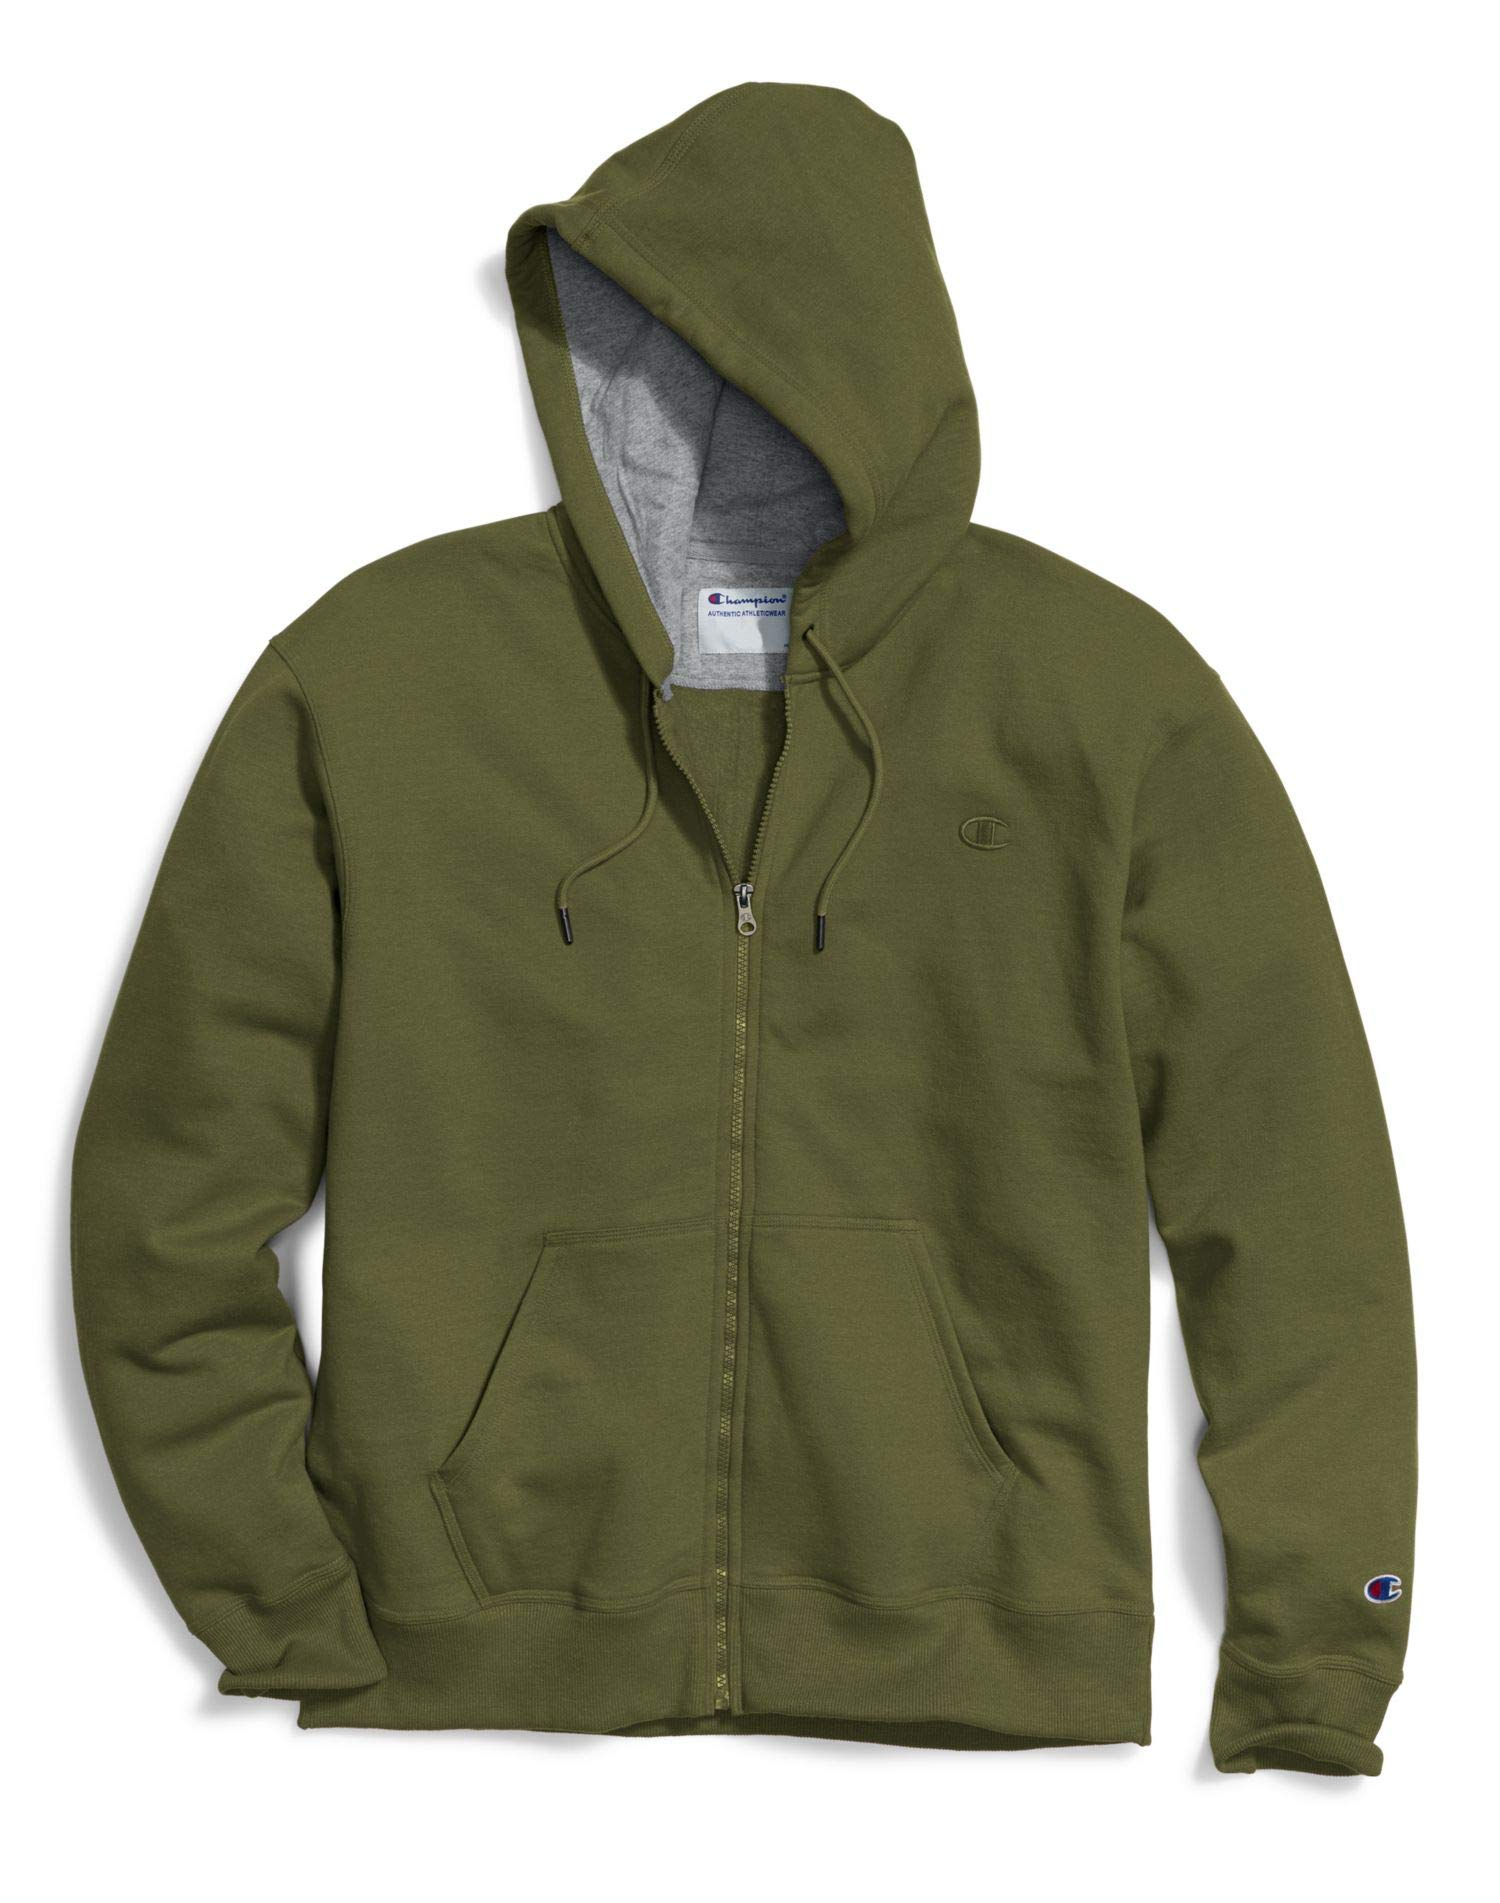 Champion Mens Powerblend Fleece Full Zip Jacket (S0891 407D55) -Cargo Oliv -2XL by Champion